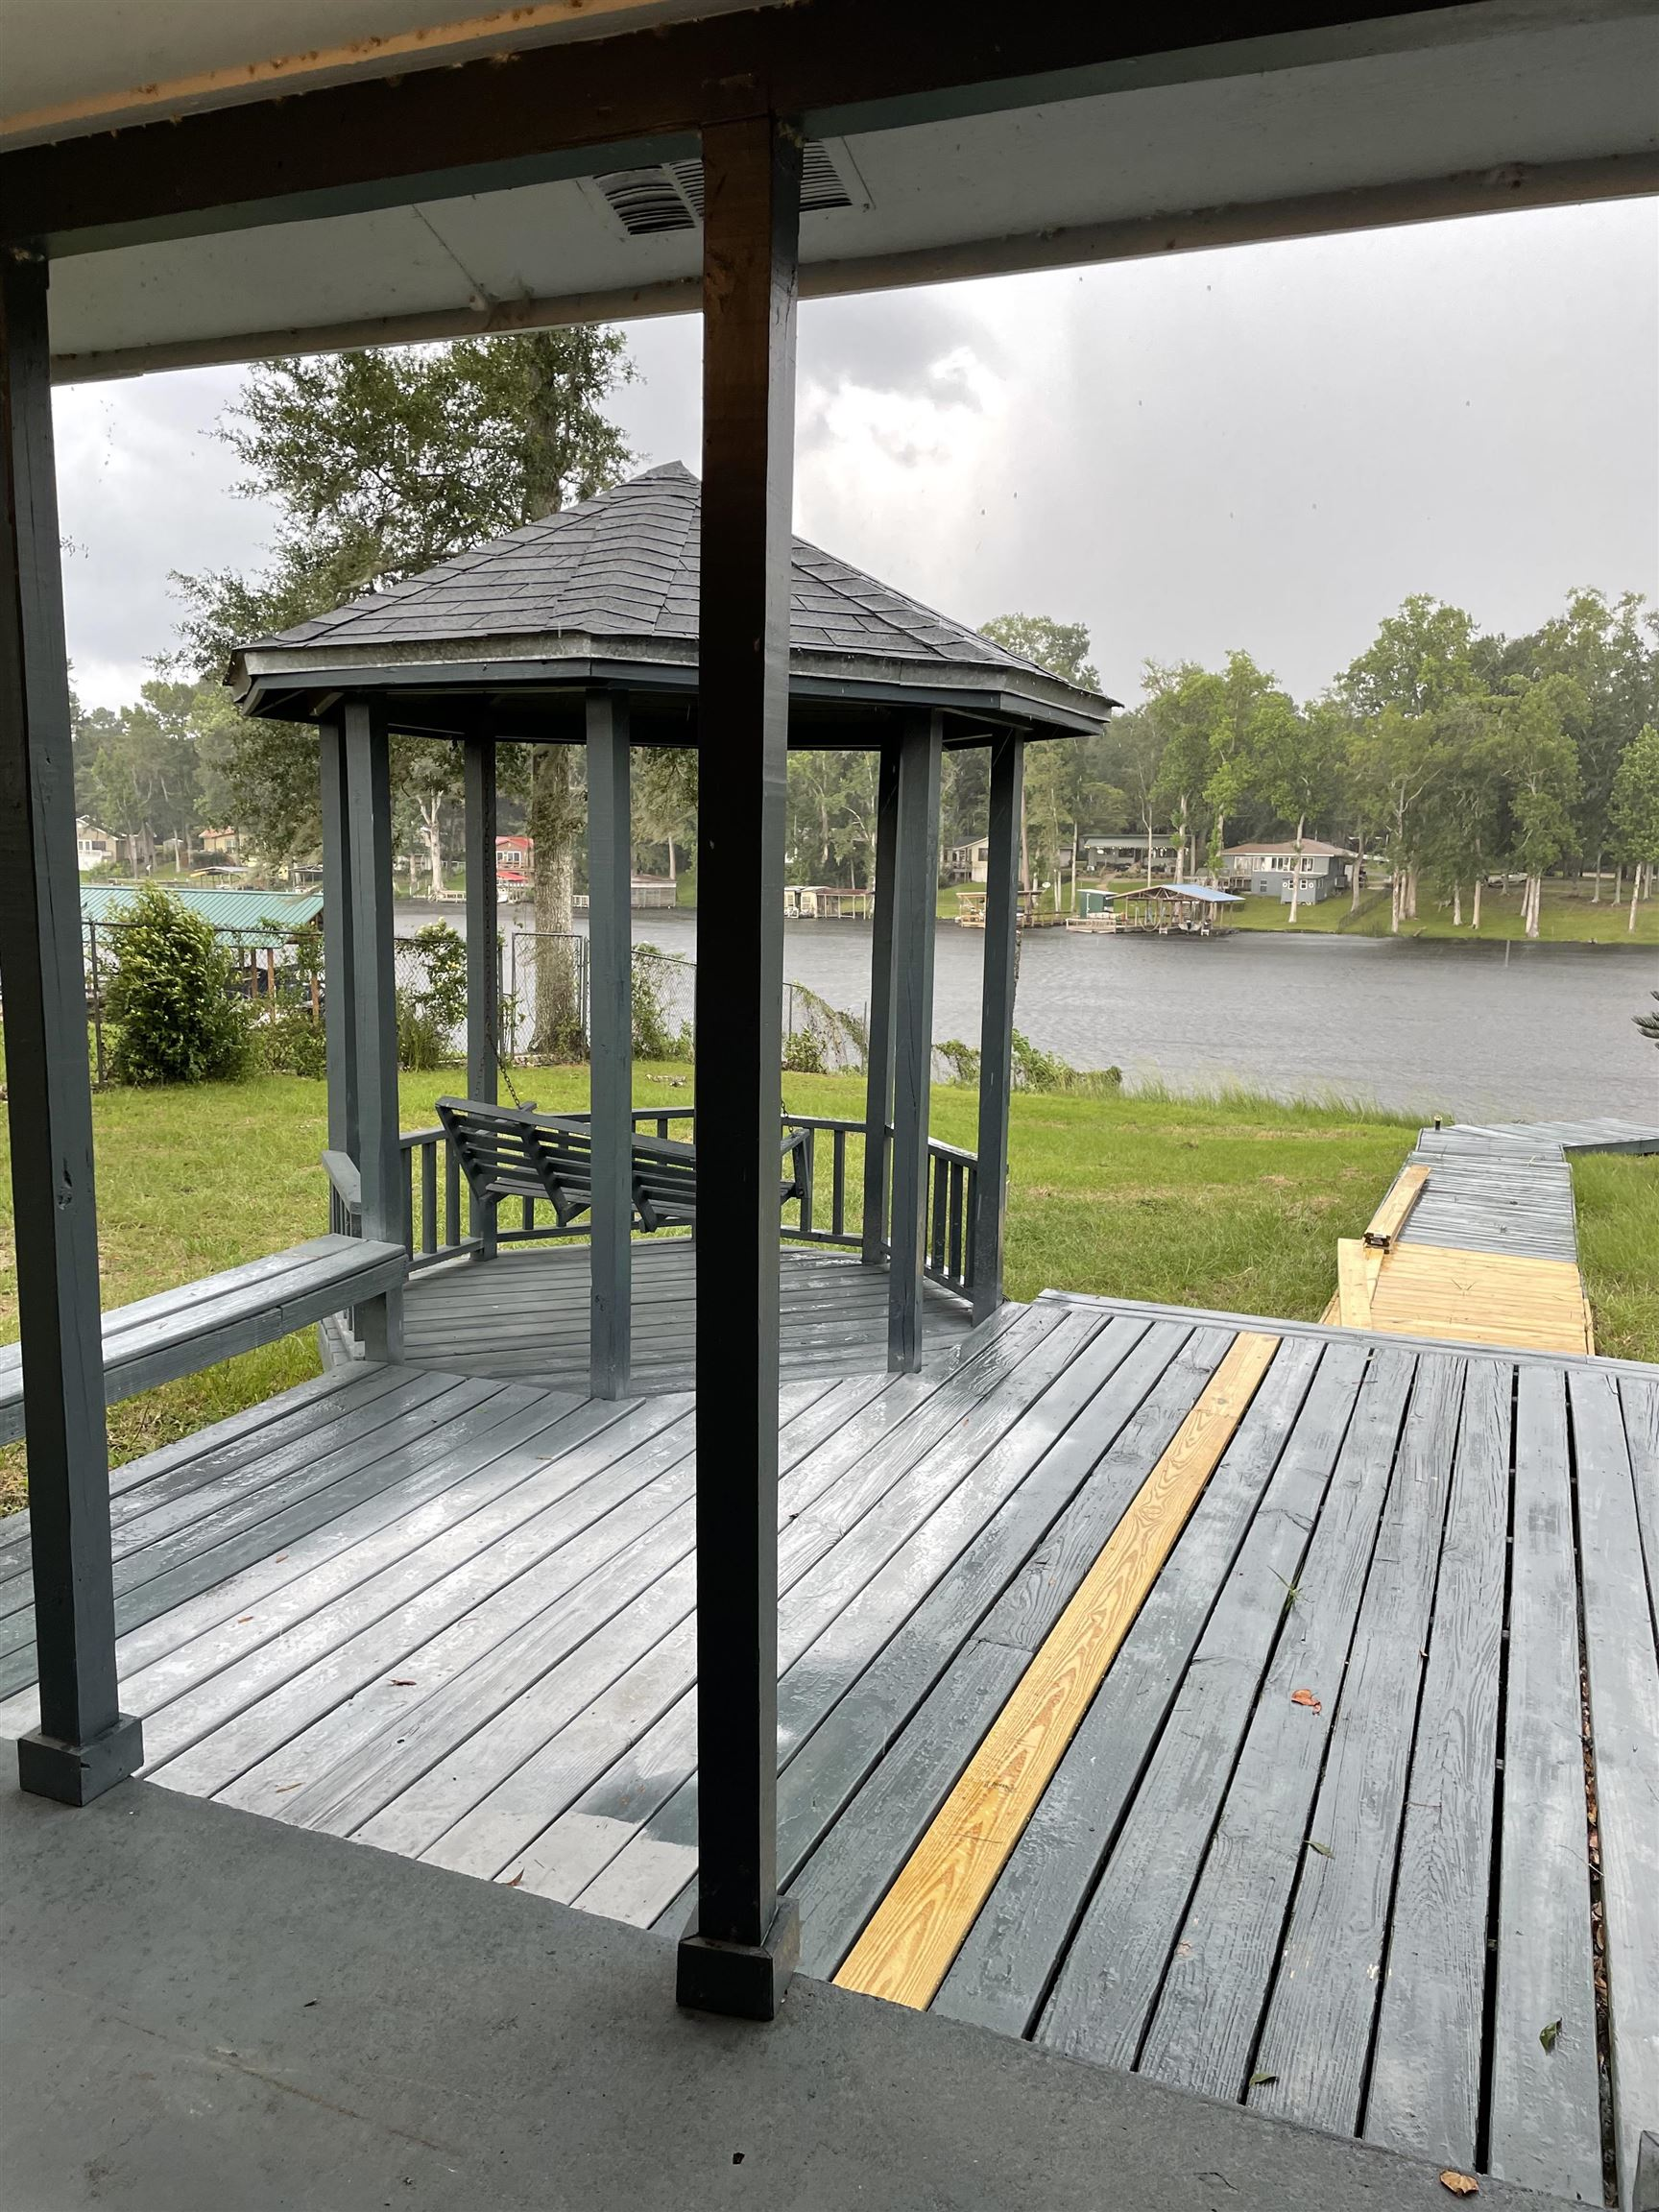 Highly sought after location on Lakefront property off a city paved rd on Lake Talquin, with a dock to keep your boats and a beautiful view from the master bedroom ,Gazebo and deck to enjoy. 150 ft of  Lakefront property on .65 acre lot. Owner will do updates  for the asking price.